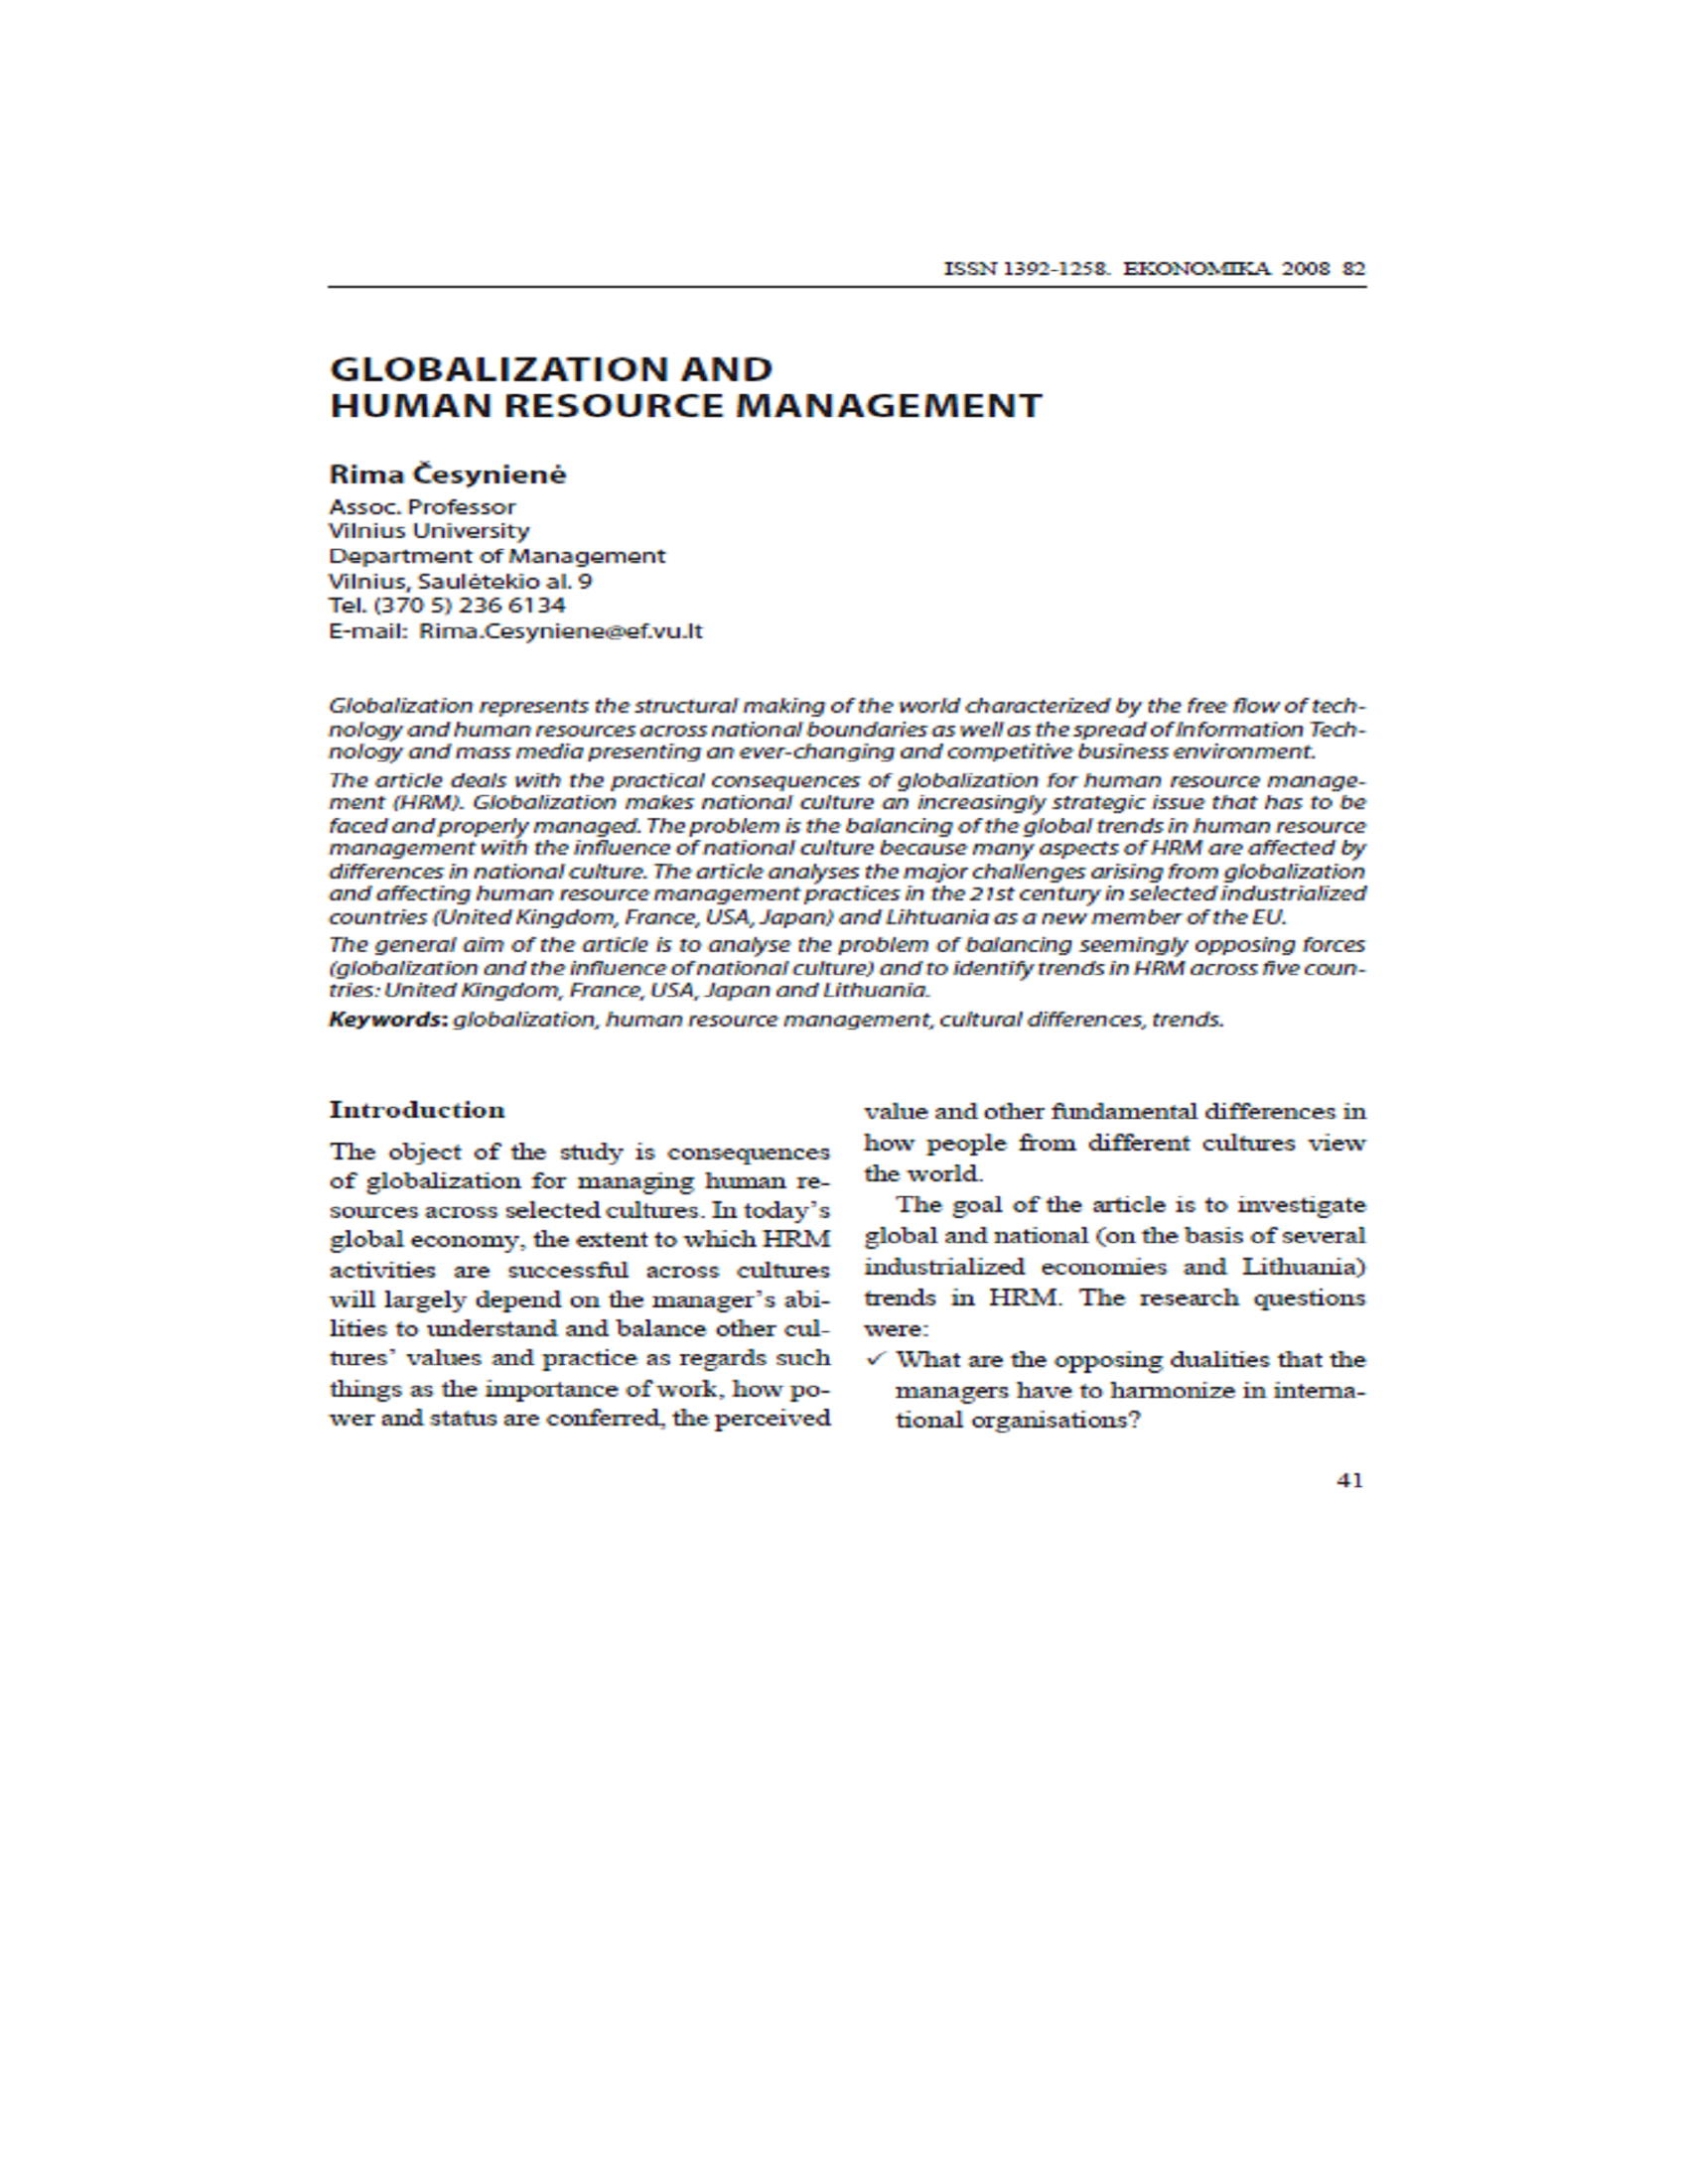 GLOBALIZATION AND HUMAN RESOURCE MANAGEMENT 16